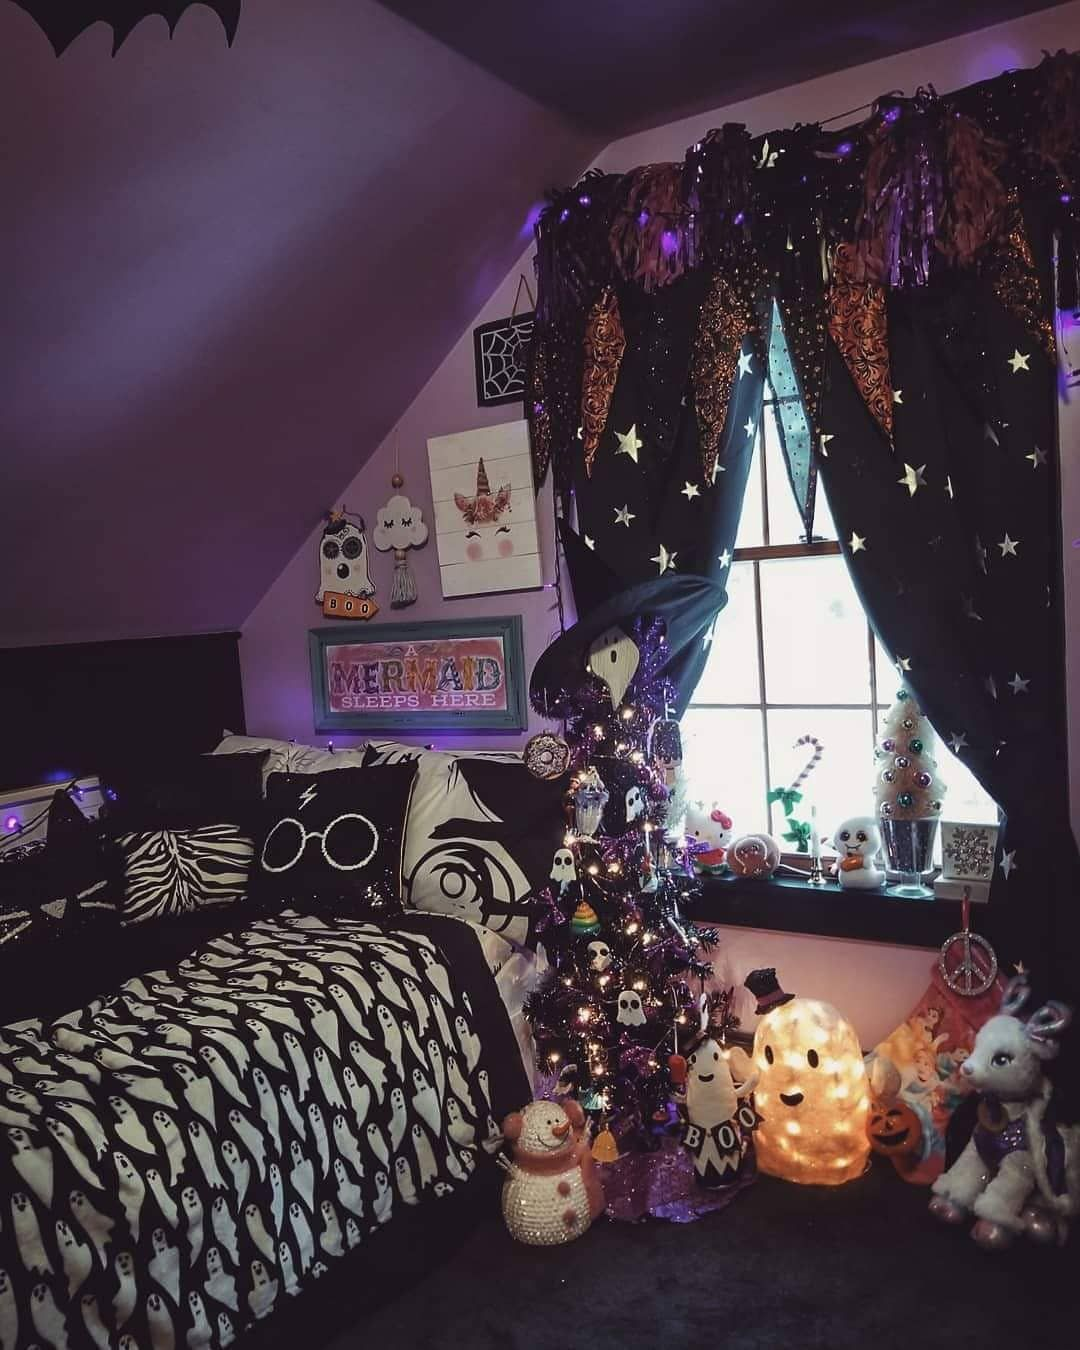 One Room Is Halloween Related But Thought It Would Be Cute To Share My Kids Mini Tree S In Th Halloween Bedroom Decor Halloween Bedroom Halloween Room Decor